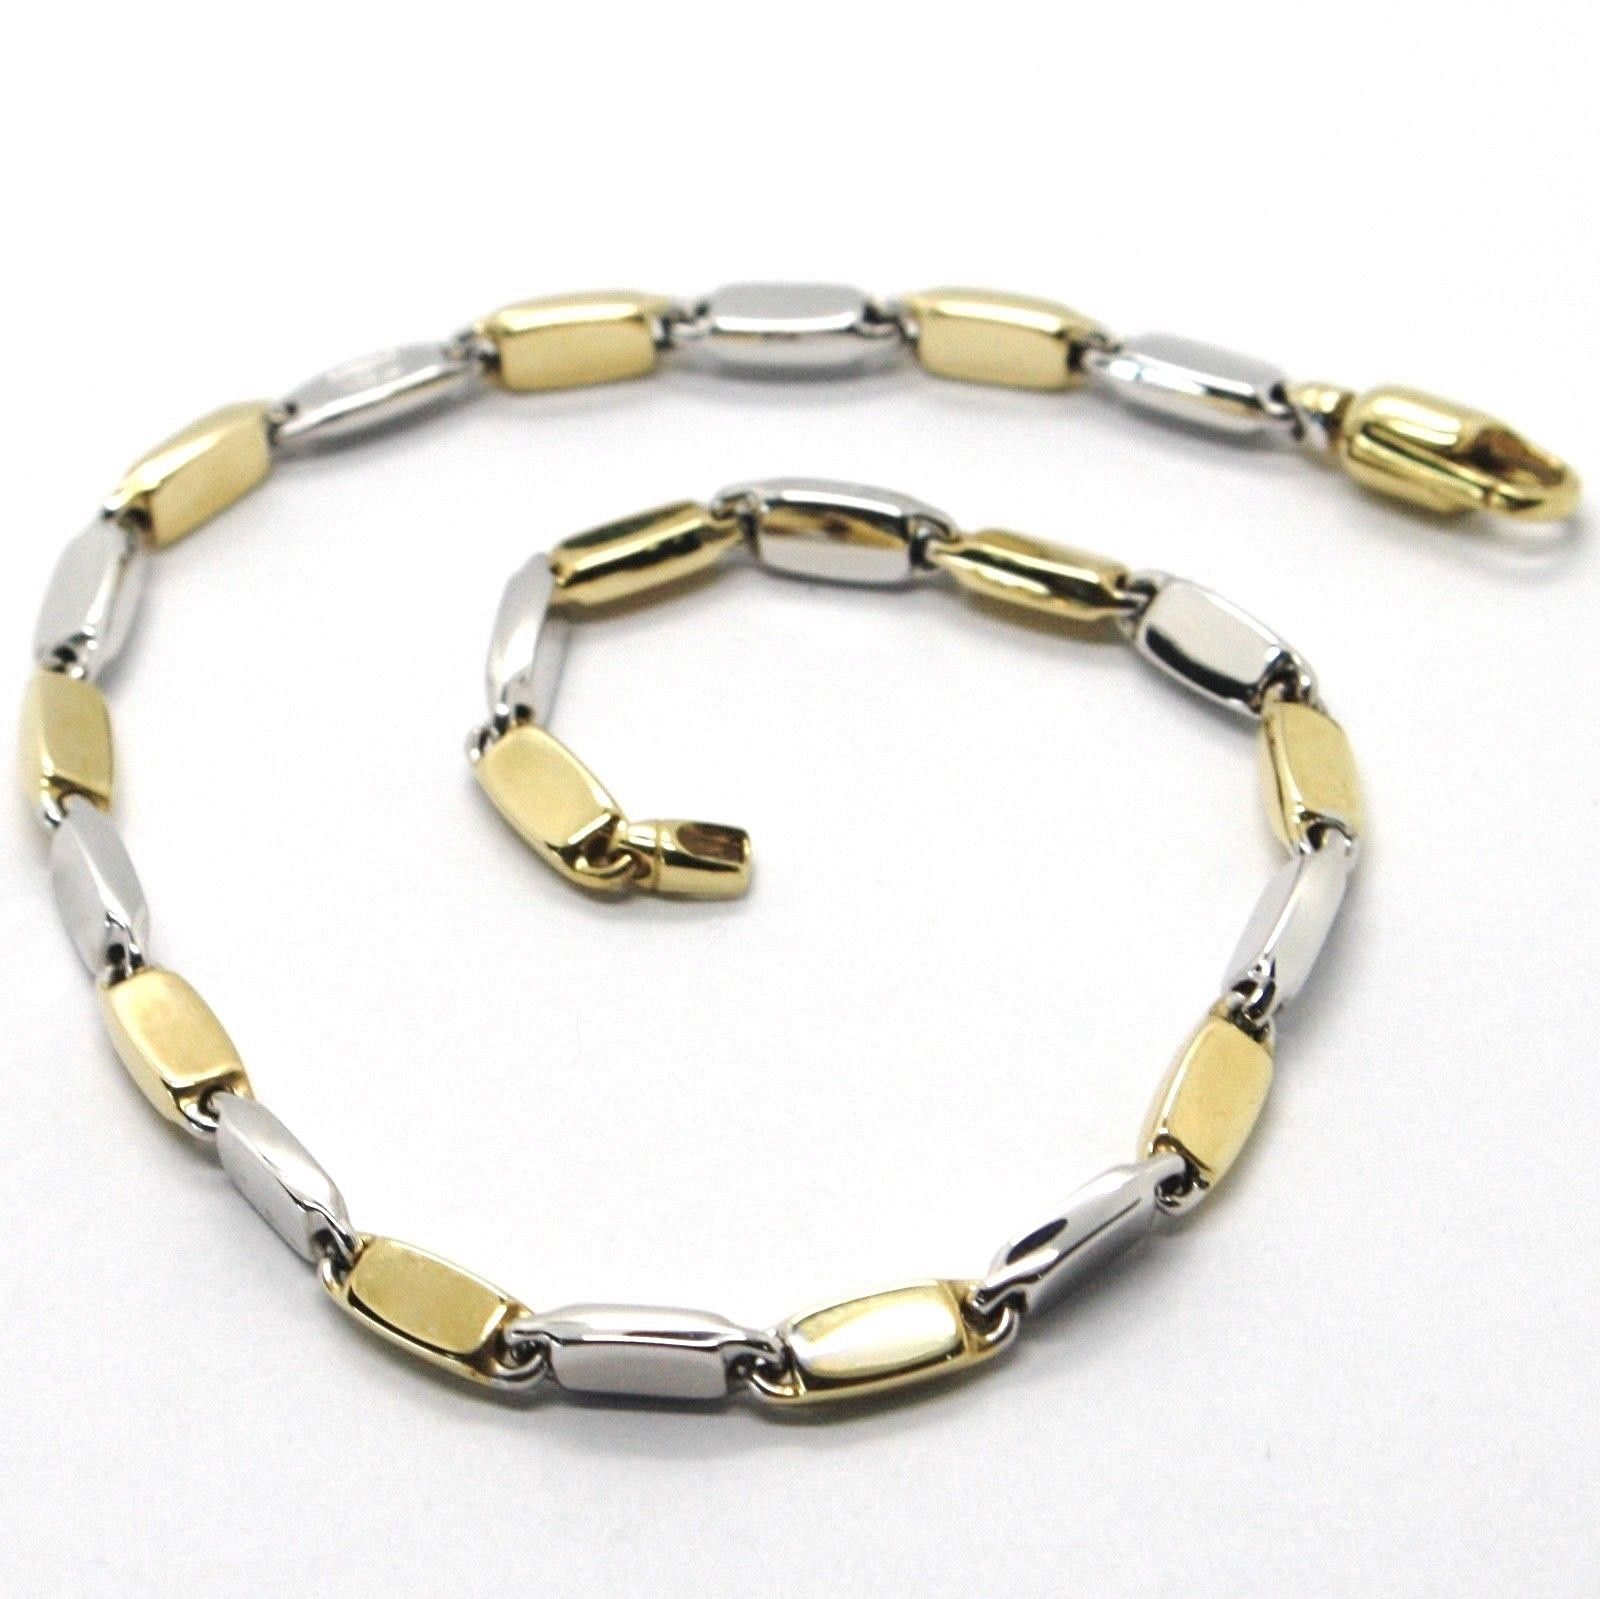 BRACELET YELLOW GOLD WHITE 18K 750, SMALL PIPES PIATTI OVALS ALTERNATING